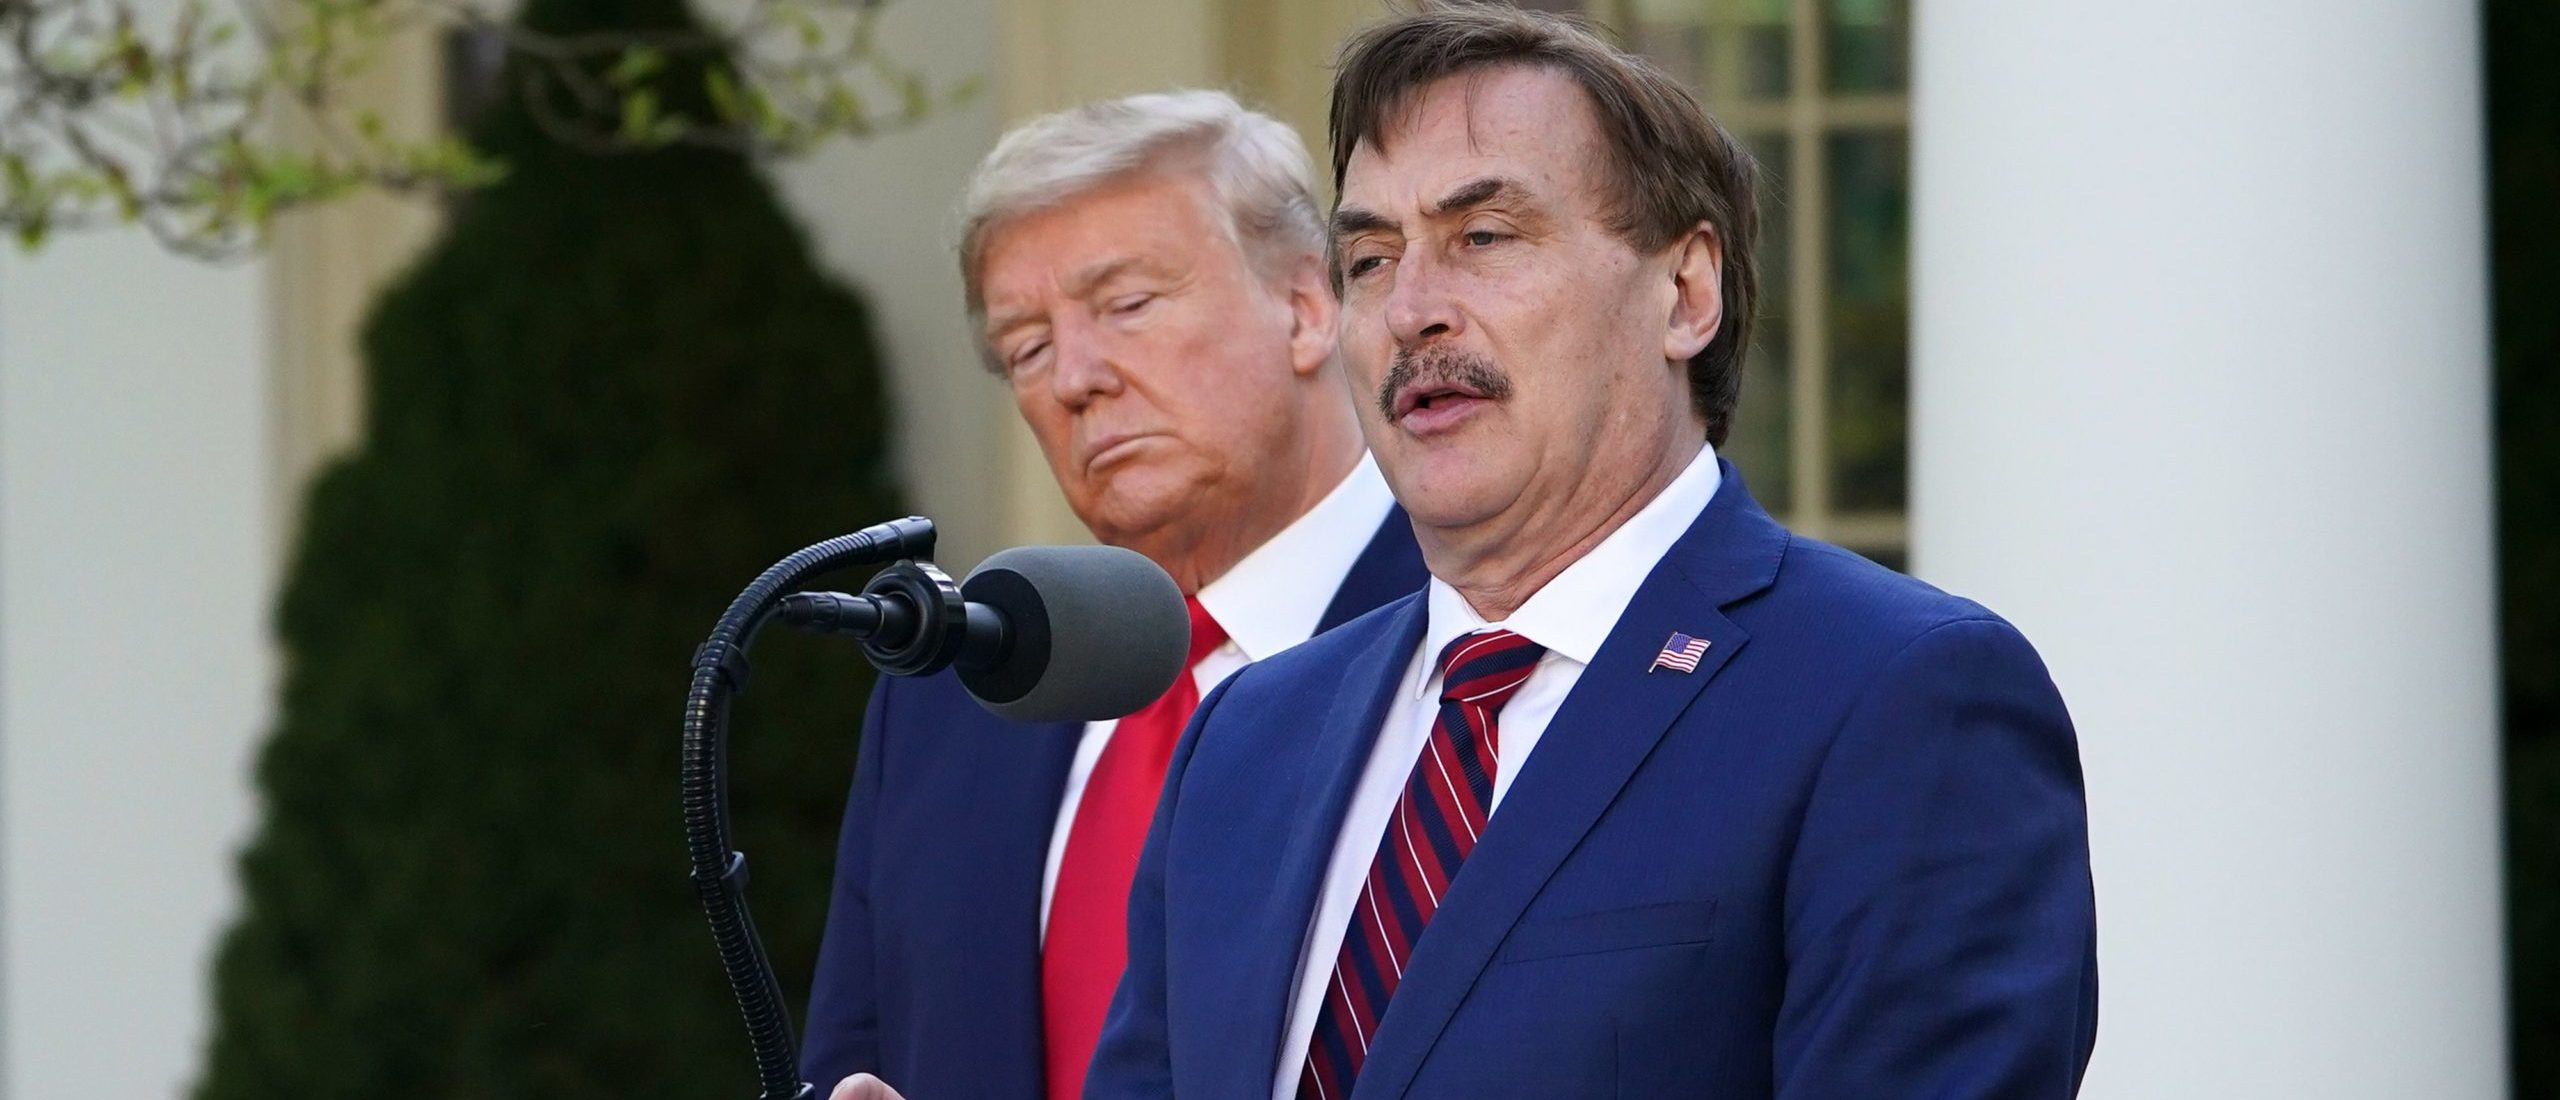 US President Donald Trump listens as Michael J. Lindell, CEO of MyPillow Inc., speaks during the daily briefing on the novel coronavirus, COVID-19, in the Rose Garden of the White House in Washington, DC, on March 30, 2020. (Photo by MANDEL NGAN / AFP) (Photo by MANDEL NGAN/AFP via Getty Images)